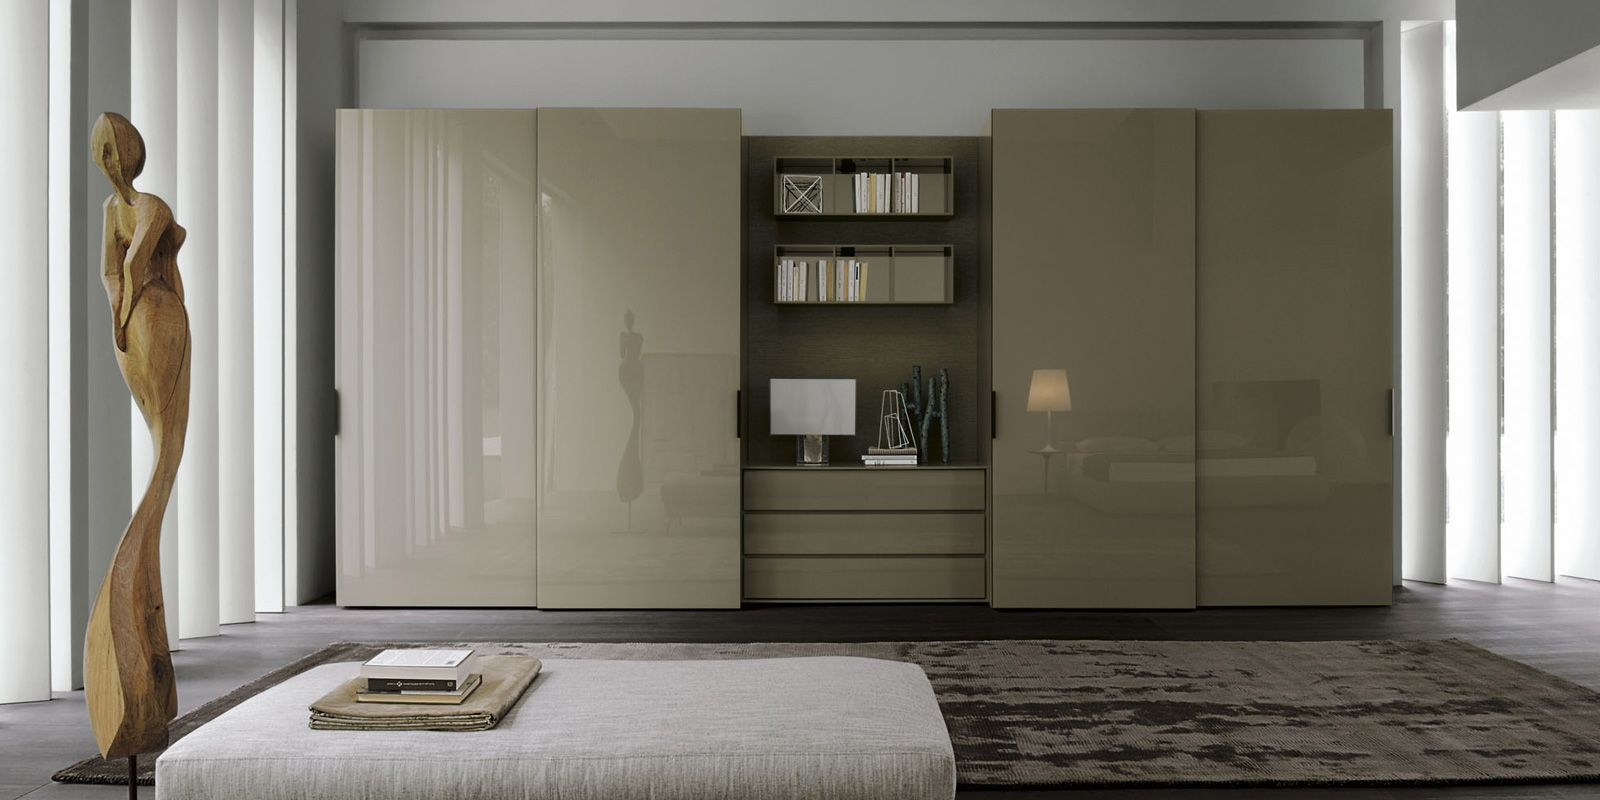 Armadi wardrobe by Sangiacomo | spaces of interest | Pinterest ...